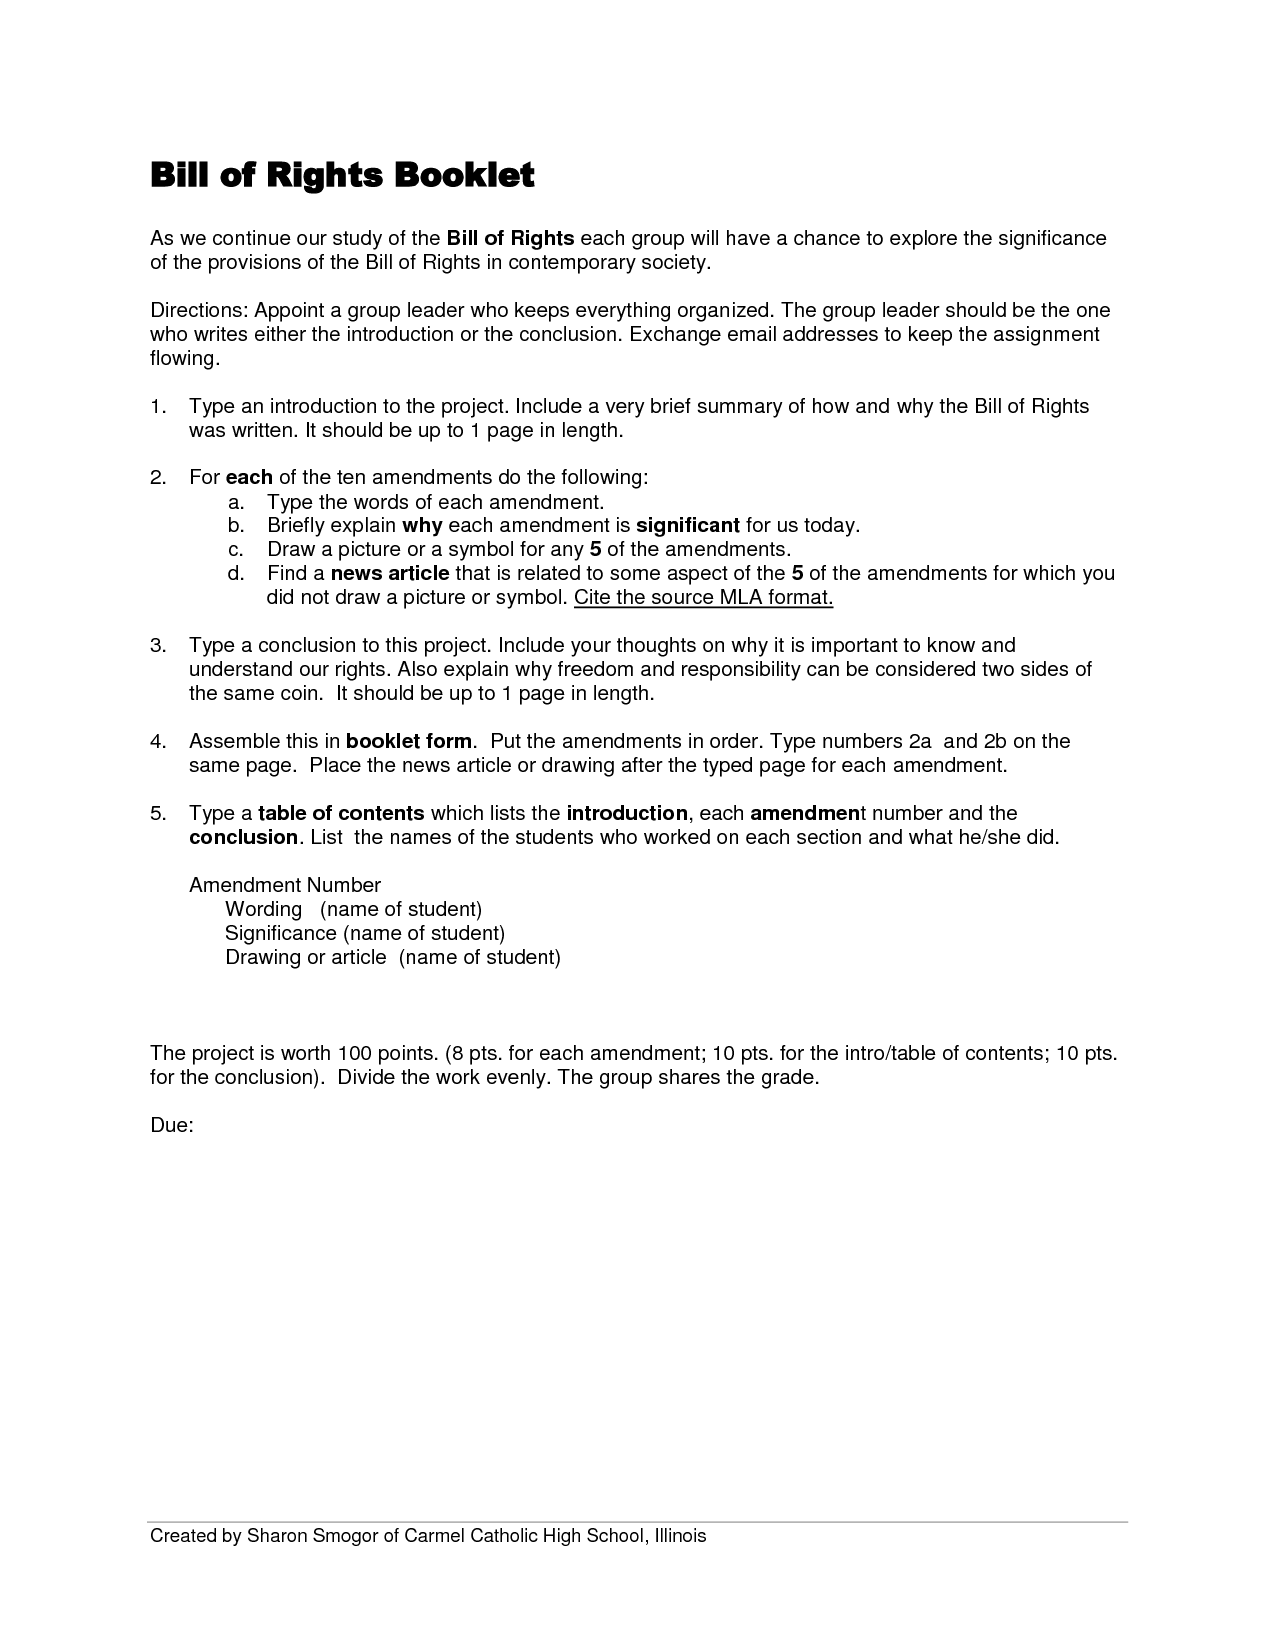 argumentative by example essay letter spm